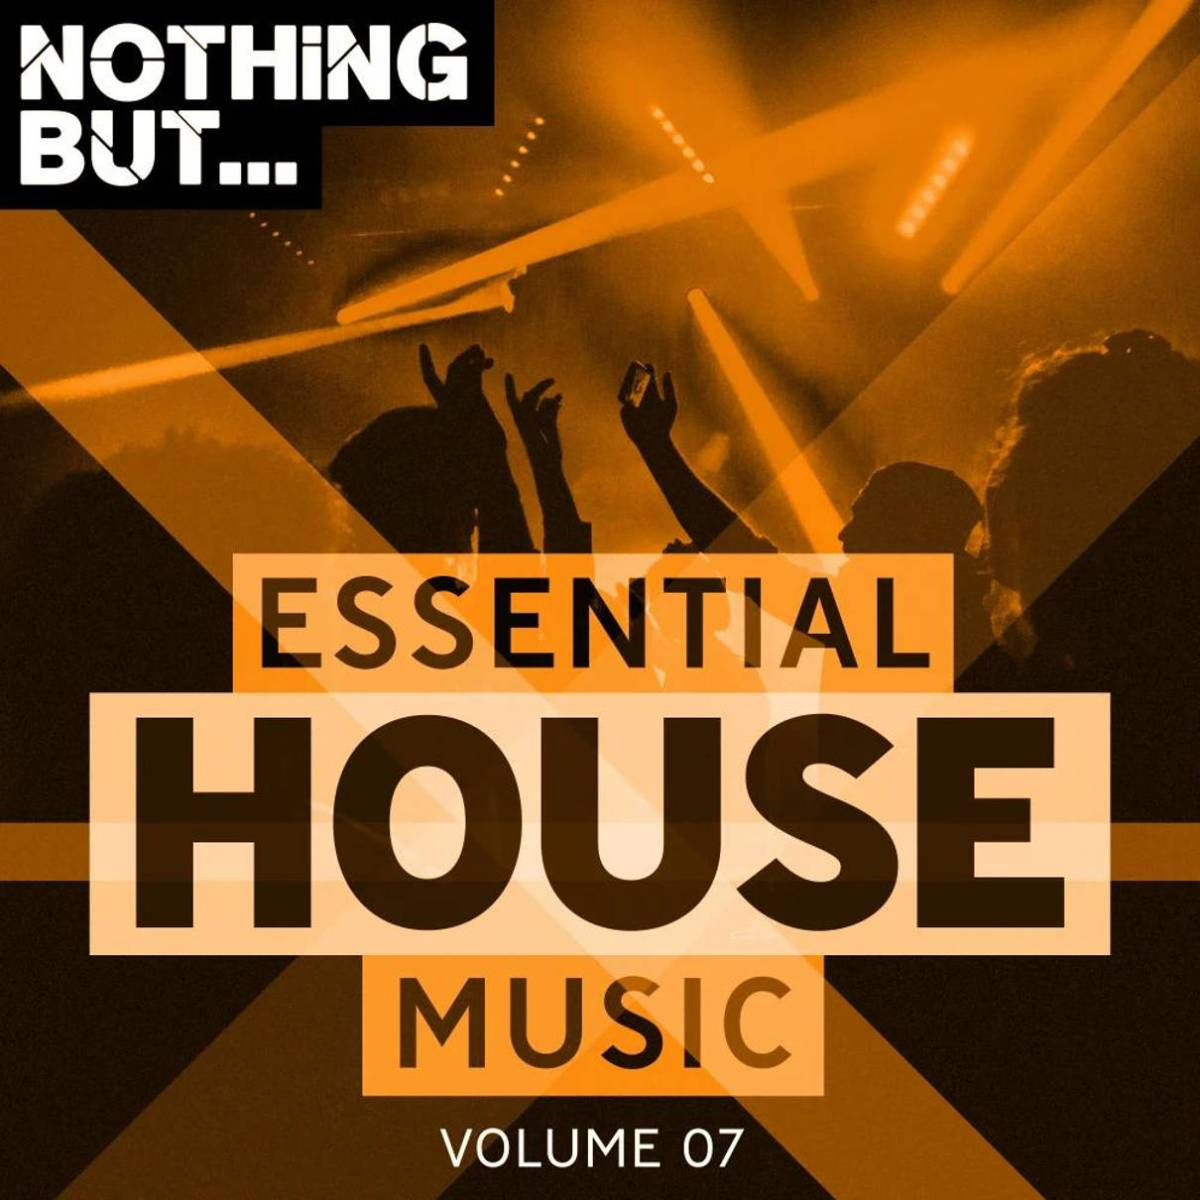 VA - Nothing But... Essential House Music, Vol. 07